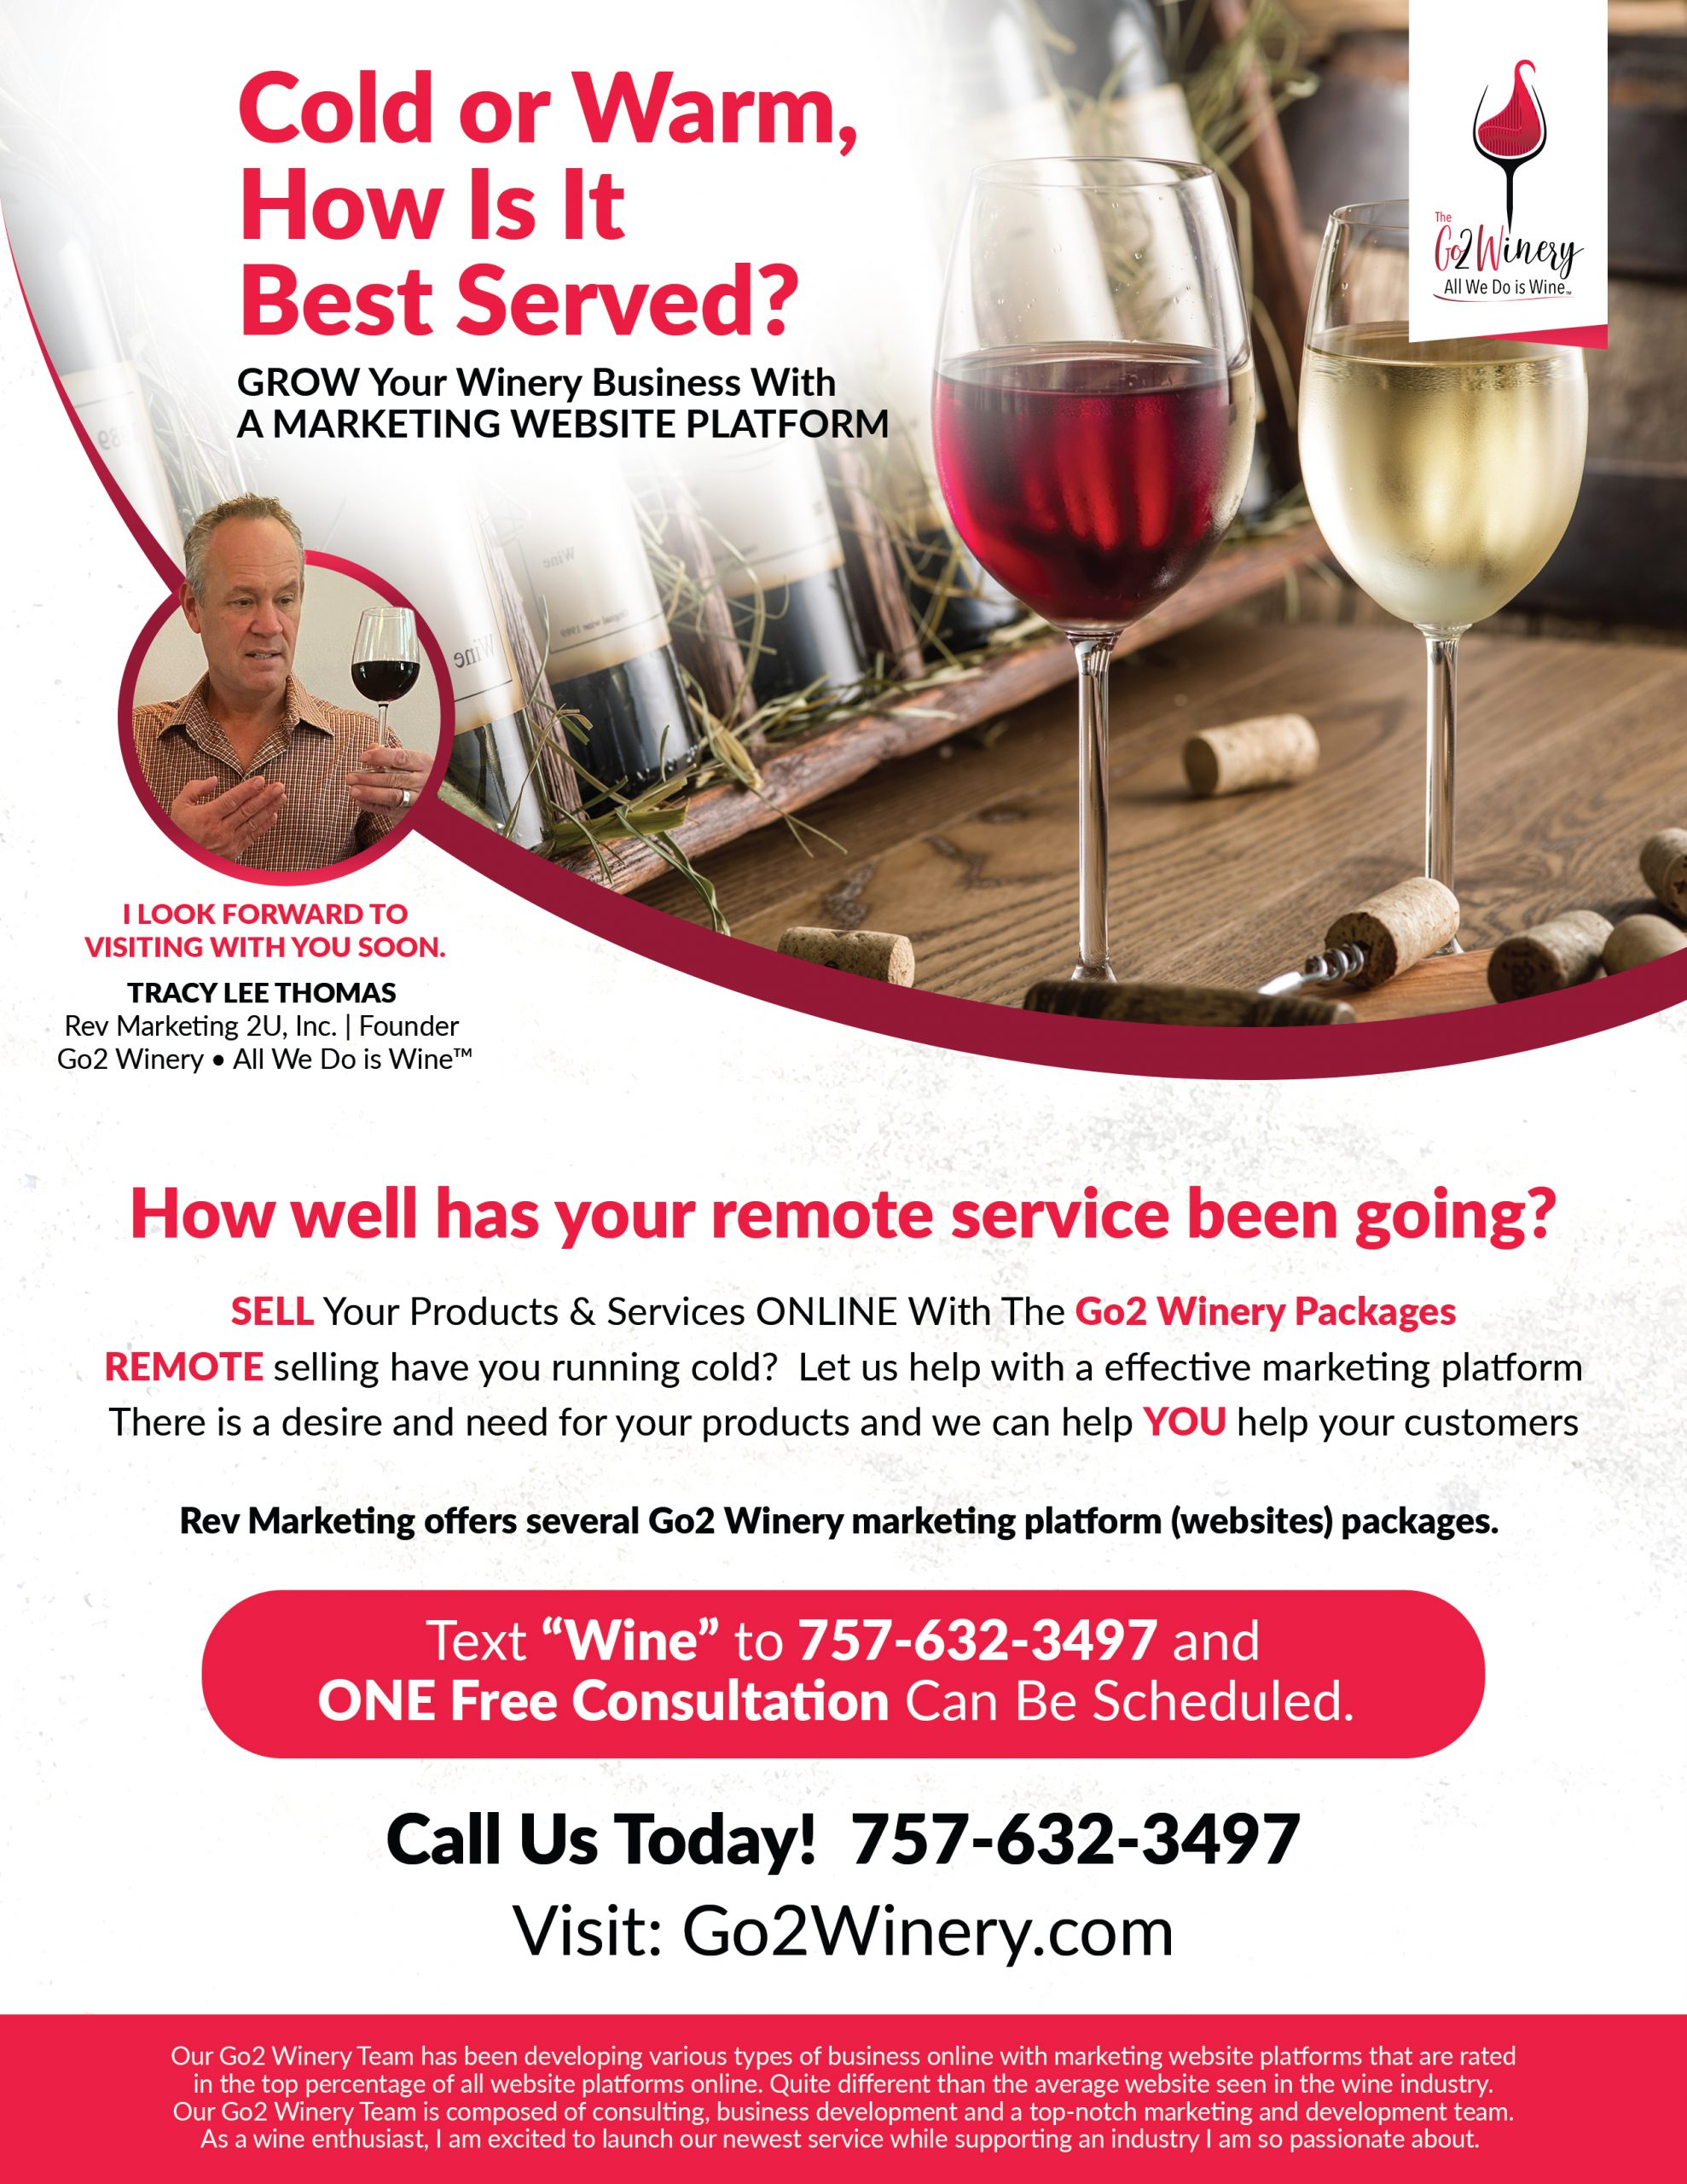 The Rev Marketing Team builds long lasting relationships with wineries while developing a marketing plan and strategies to enhance growth online and in communities around the country